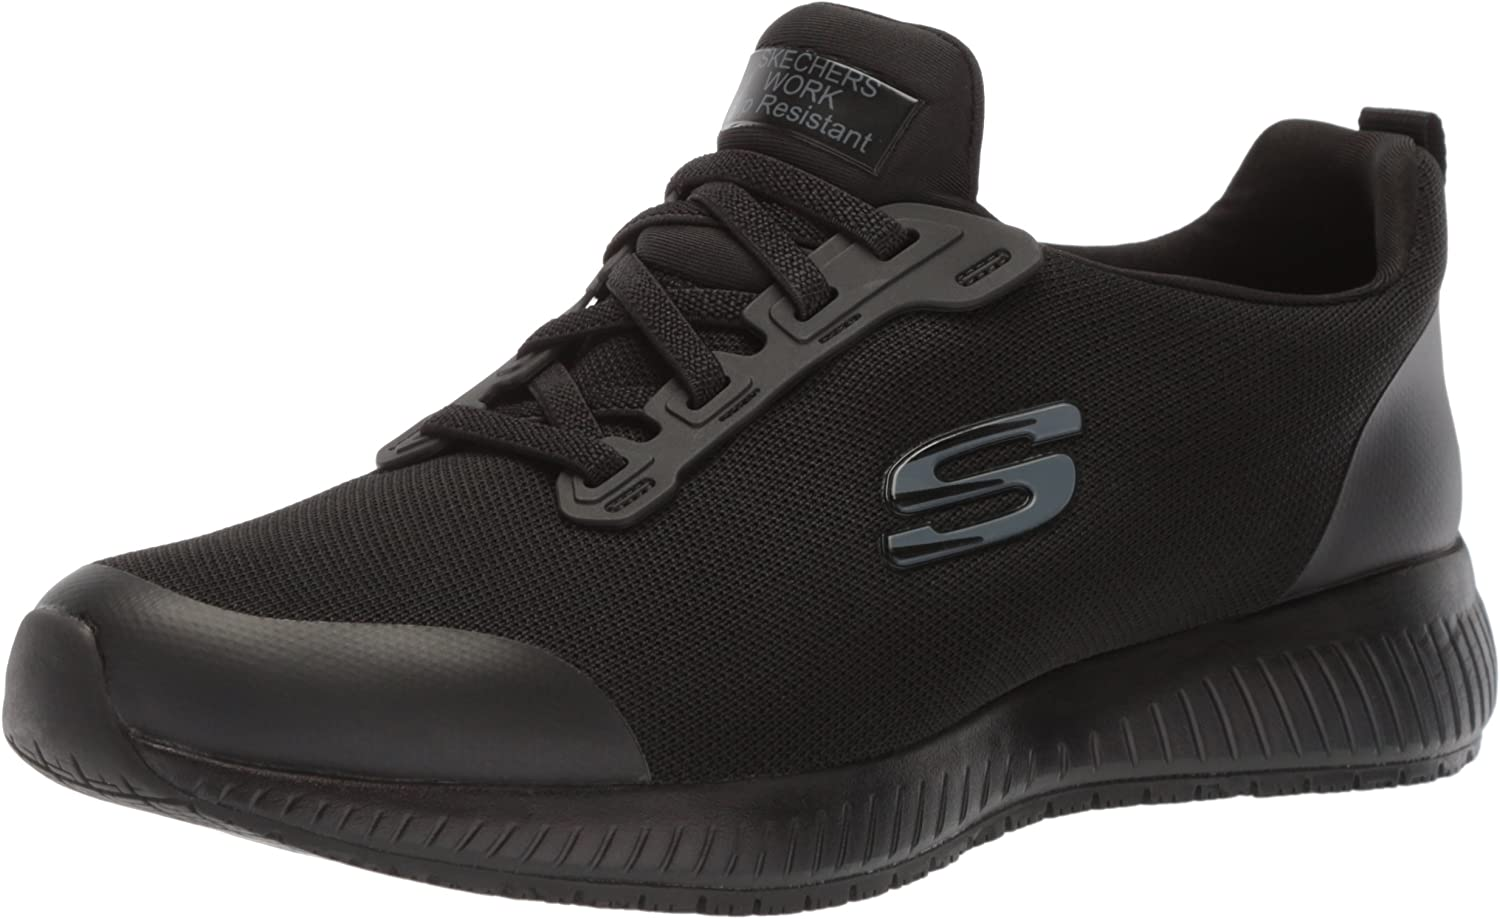 Top 10 Non Slip Shoes For Food Service